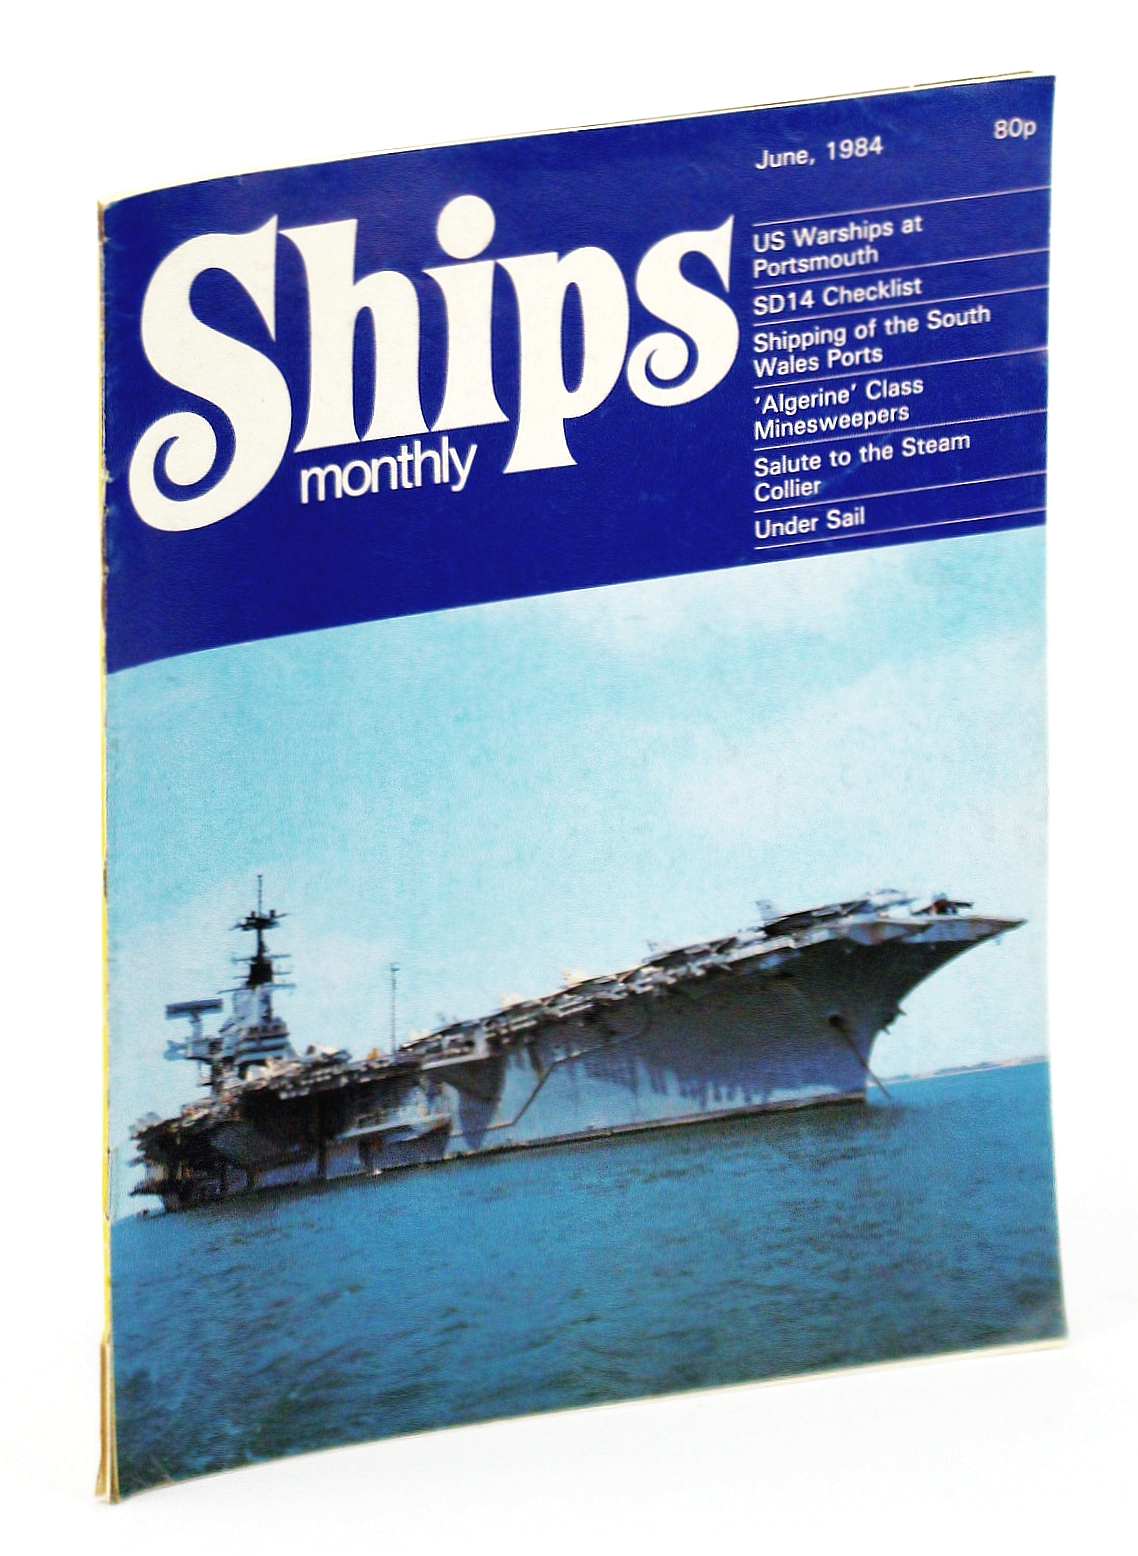 Image for Ships Monthly - The Magazine for Shiplovers Ashore and Afloat, June 1984 - Sunderland Venture and SD14 Checklist